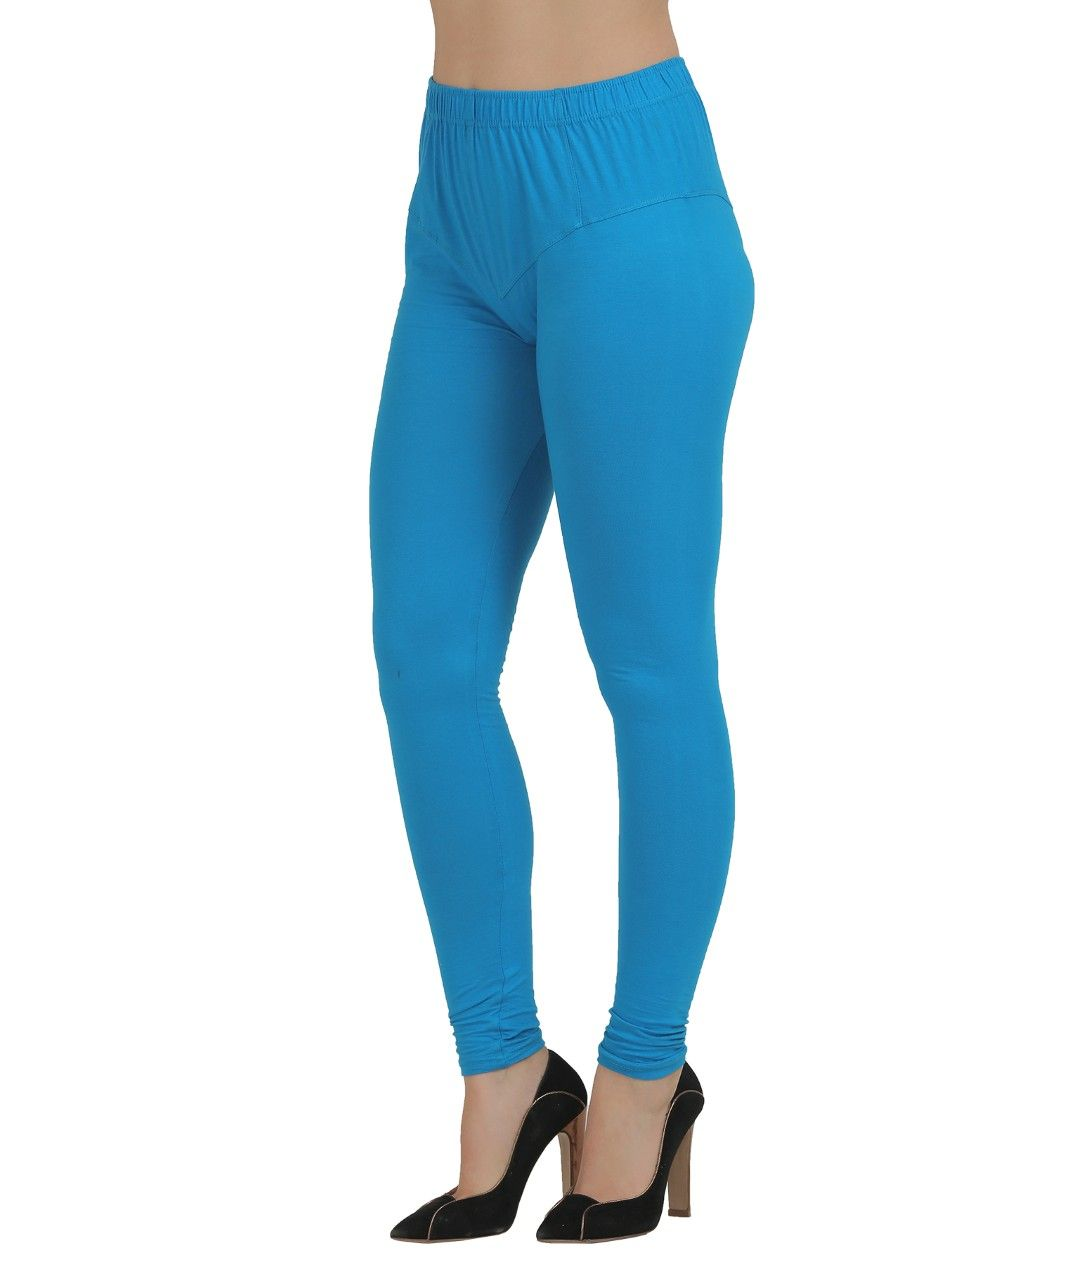 HUE Temp Control Cotton Capri Leggings are designed to keep your body temperature regulated in any season. These soft cotton blend capri leggings feature HeiQ Smart Temp technology to help .